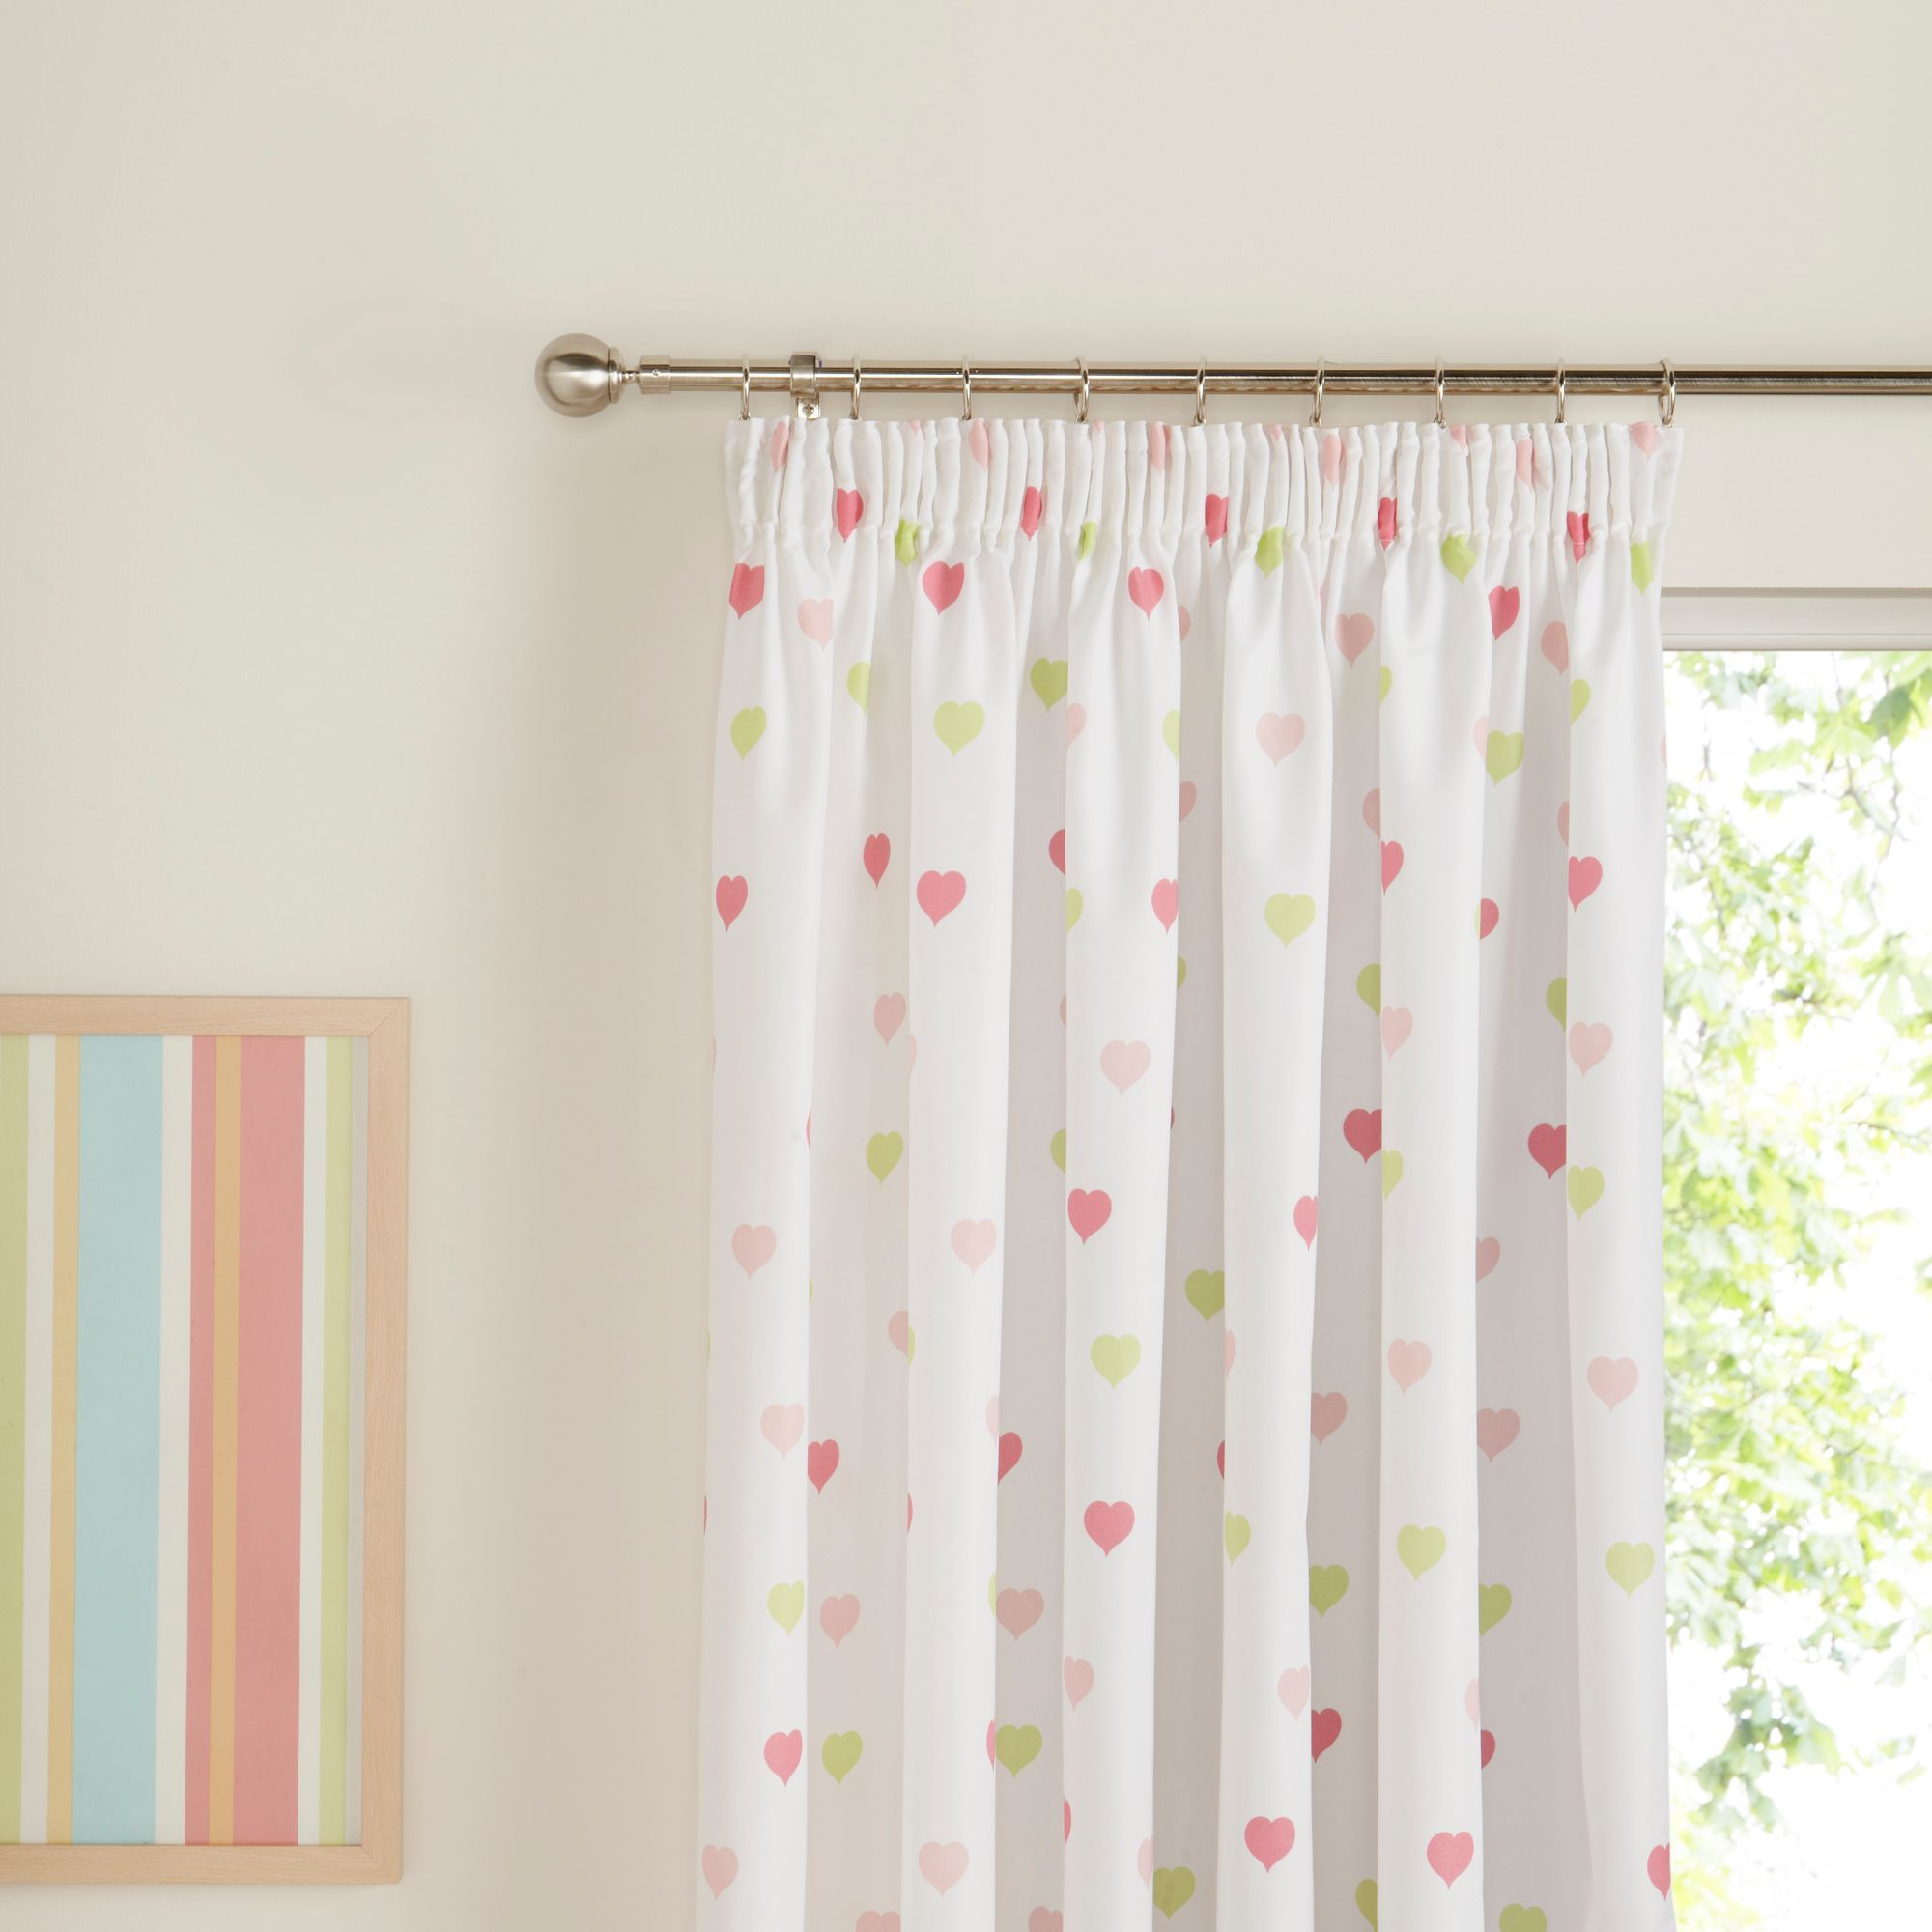 a design of kids curtains